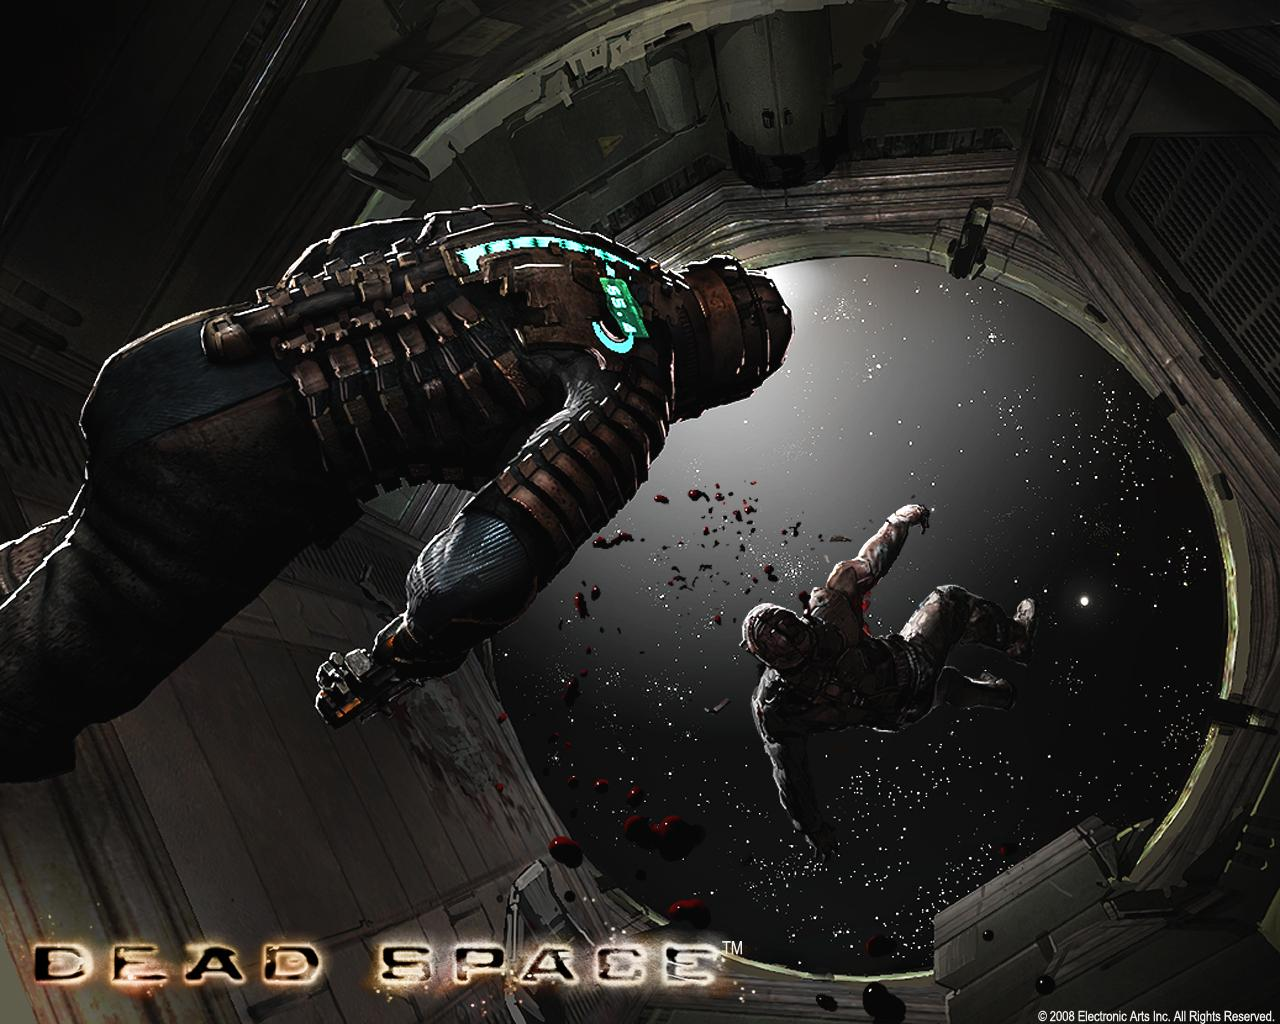 dead space (2008) promotional art - mobygames